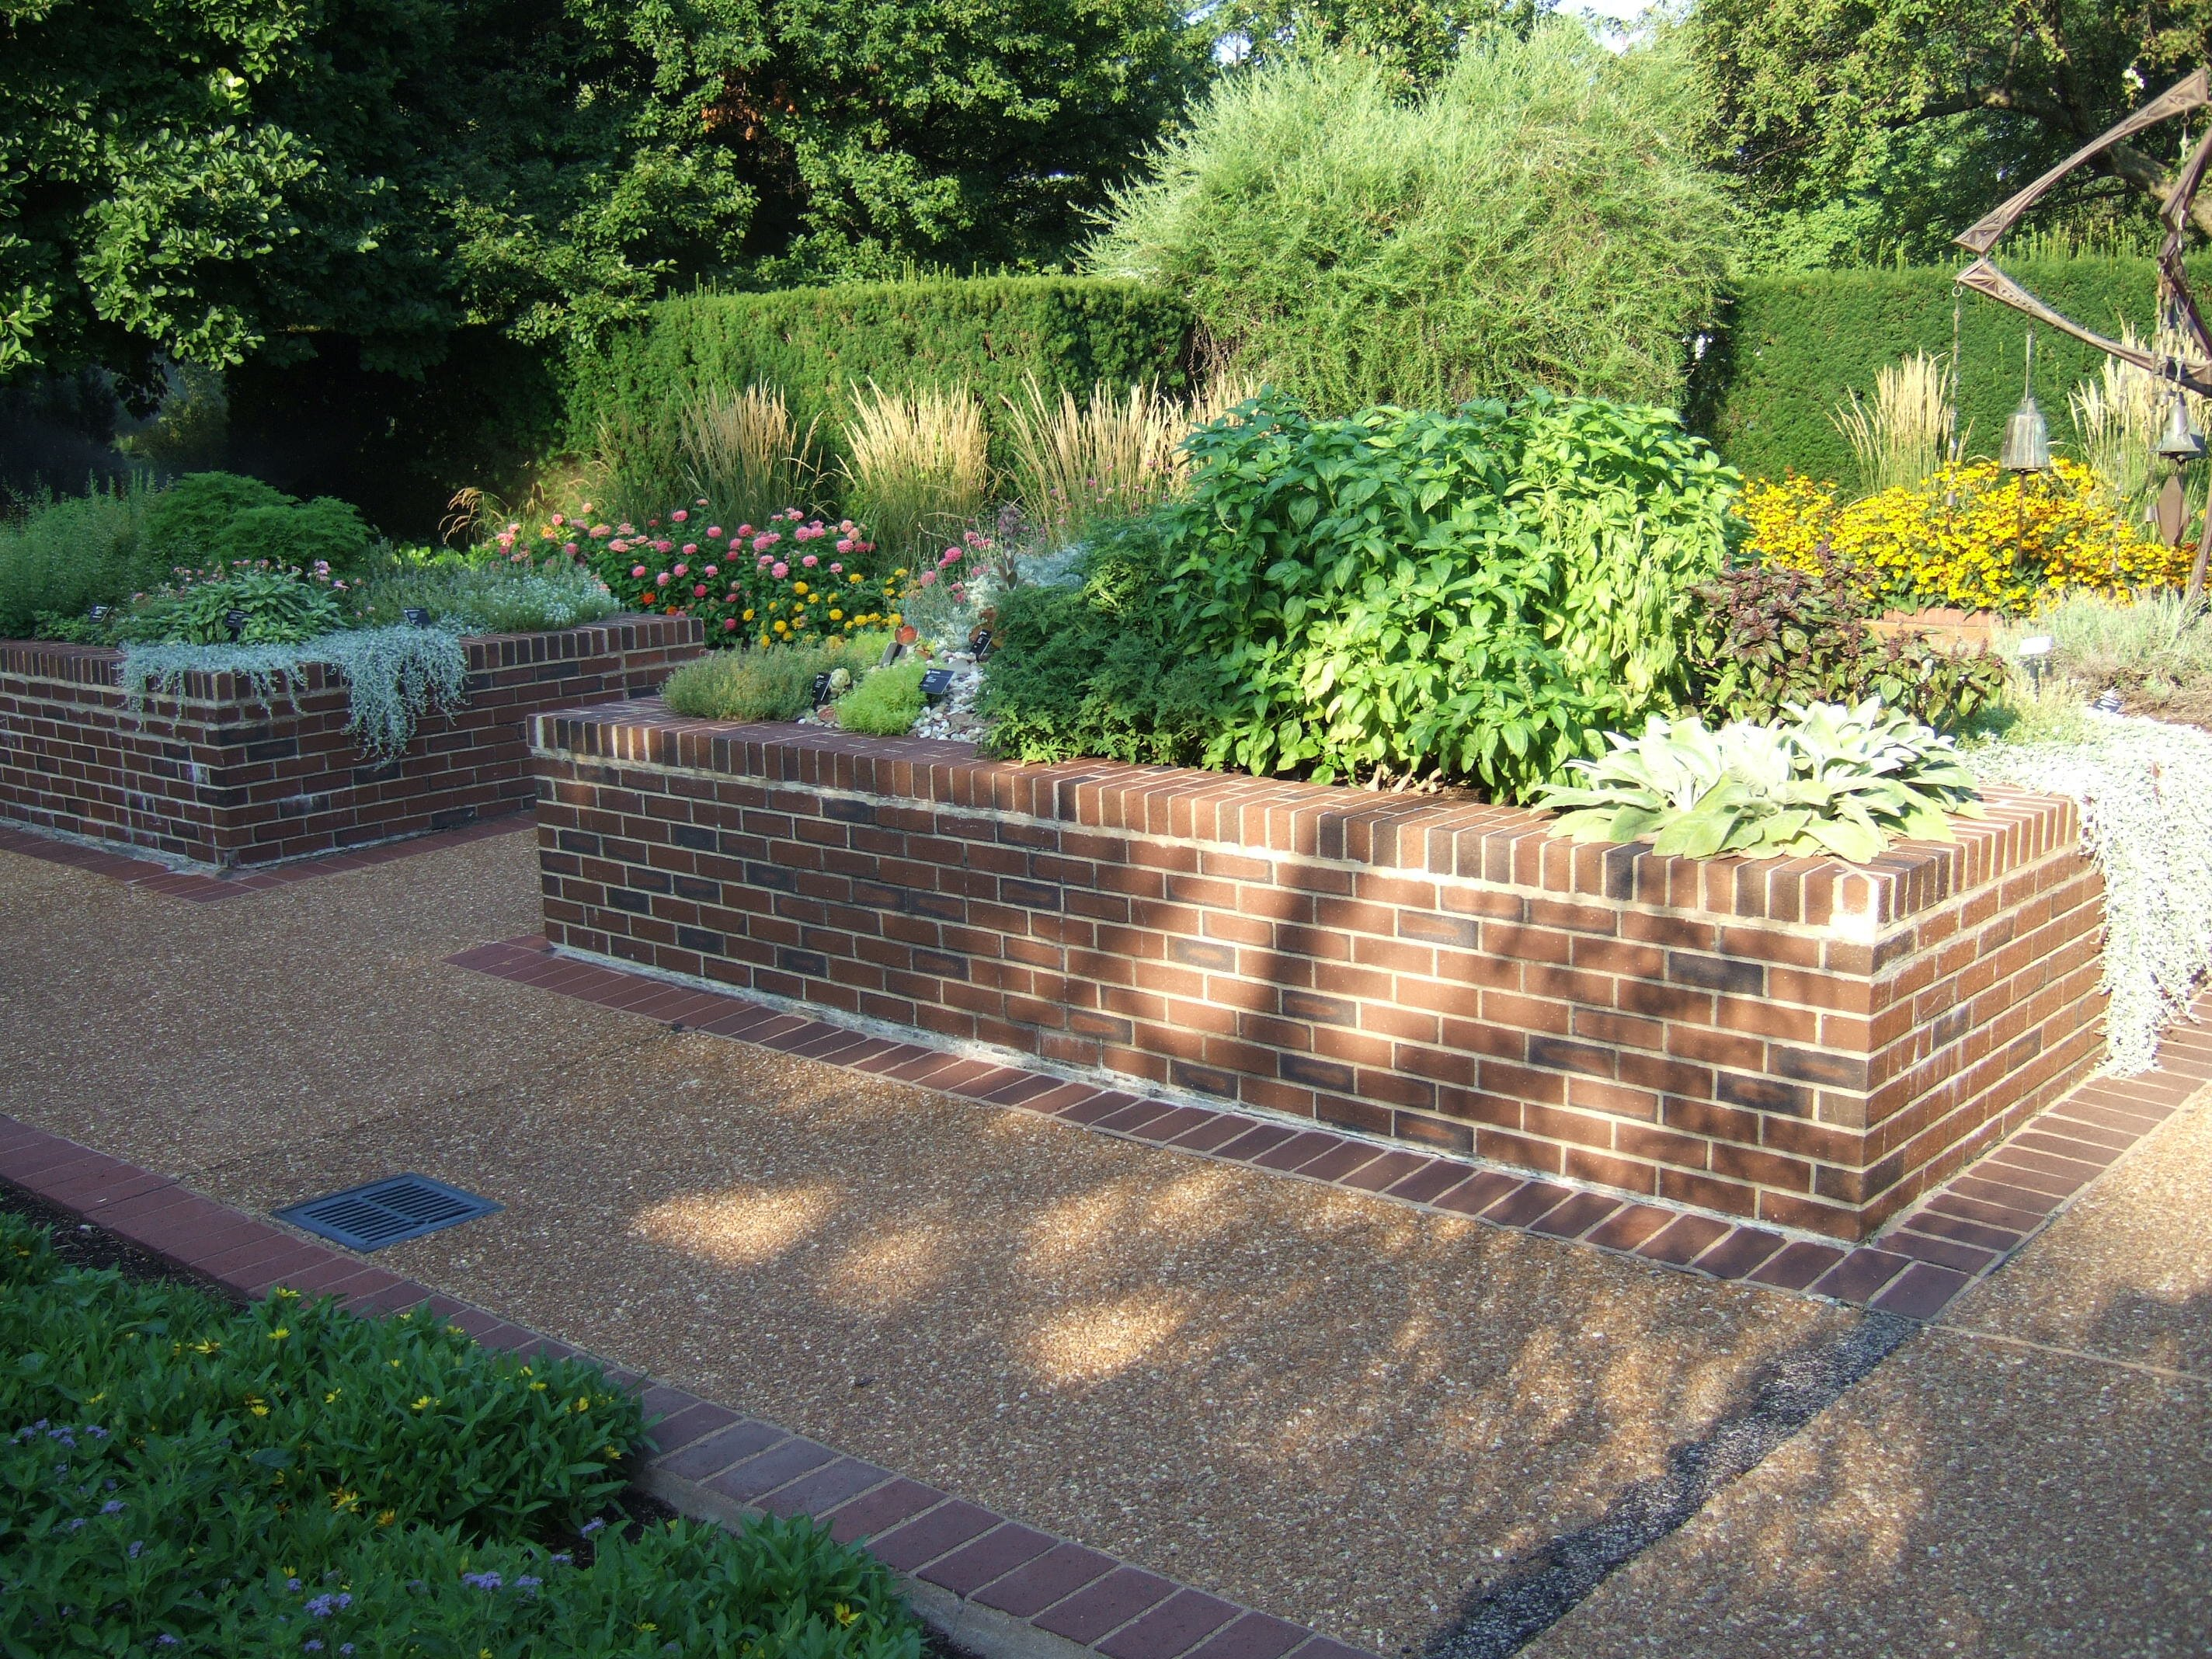 Missouri botanical garden enriching lives through for Garden design for disabled